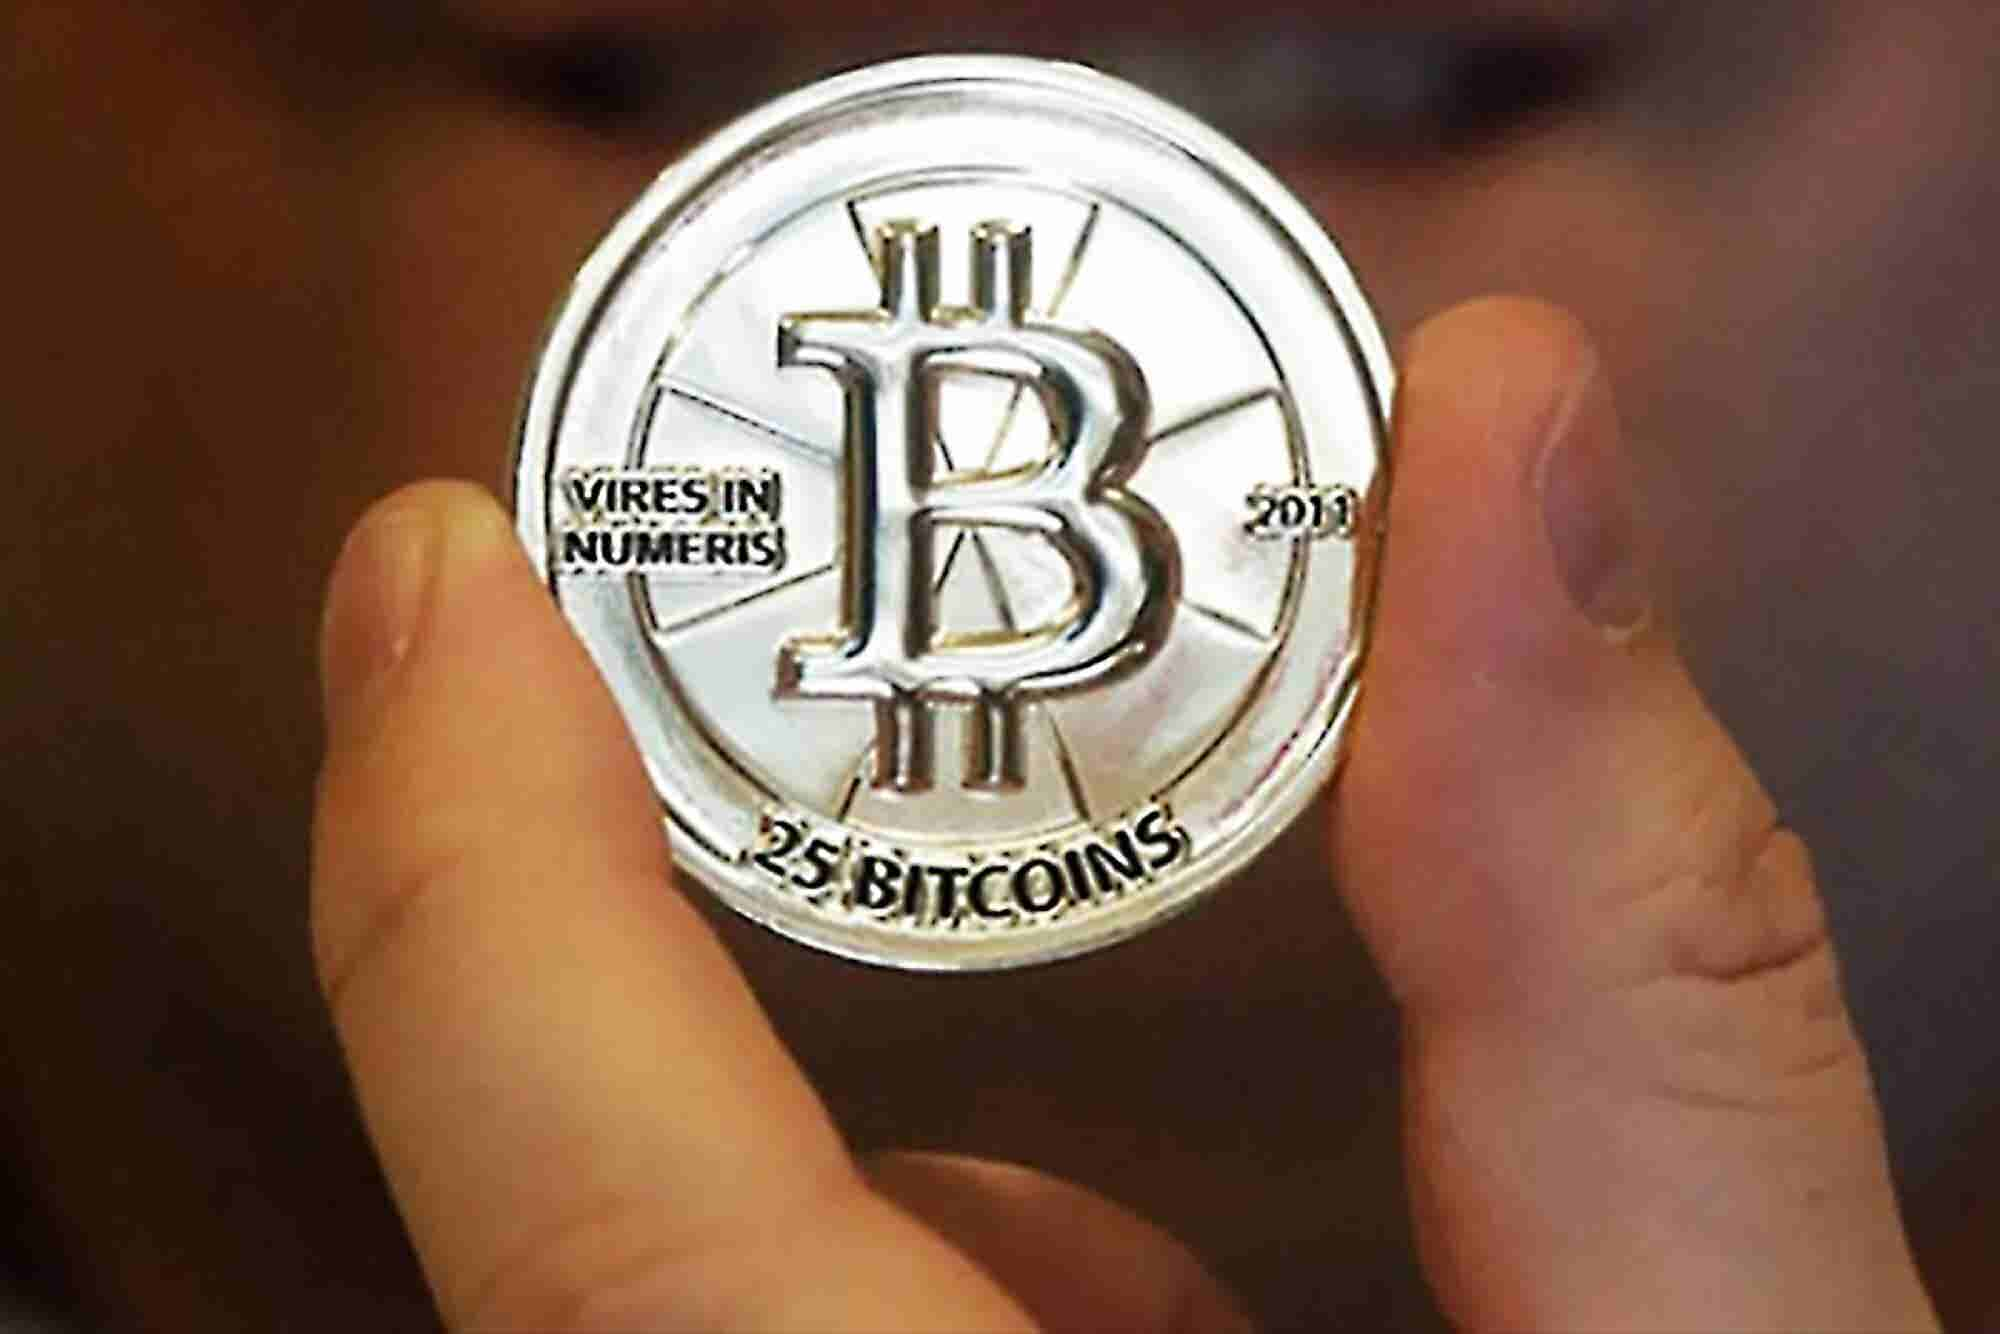 Bitcoin Companies Subpoenaed Over Regulatory Concerns